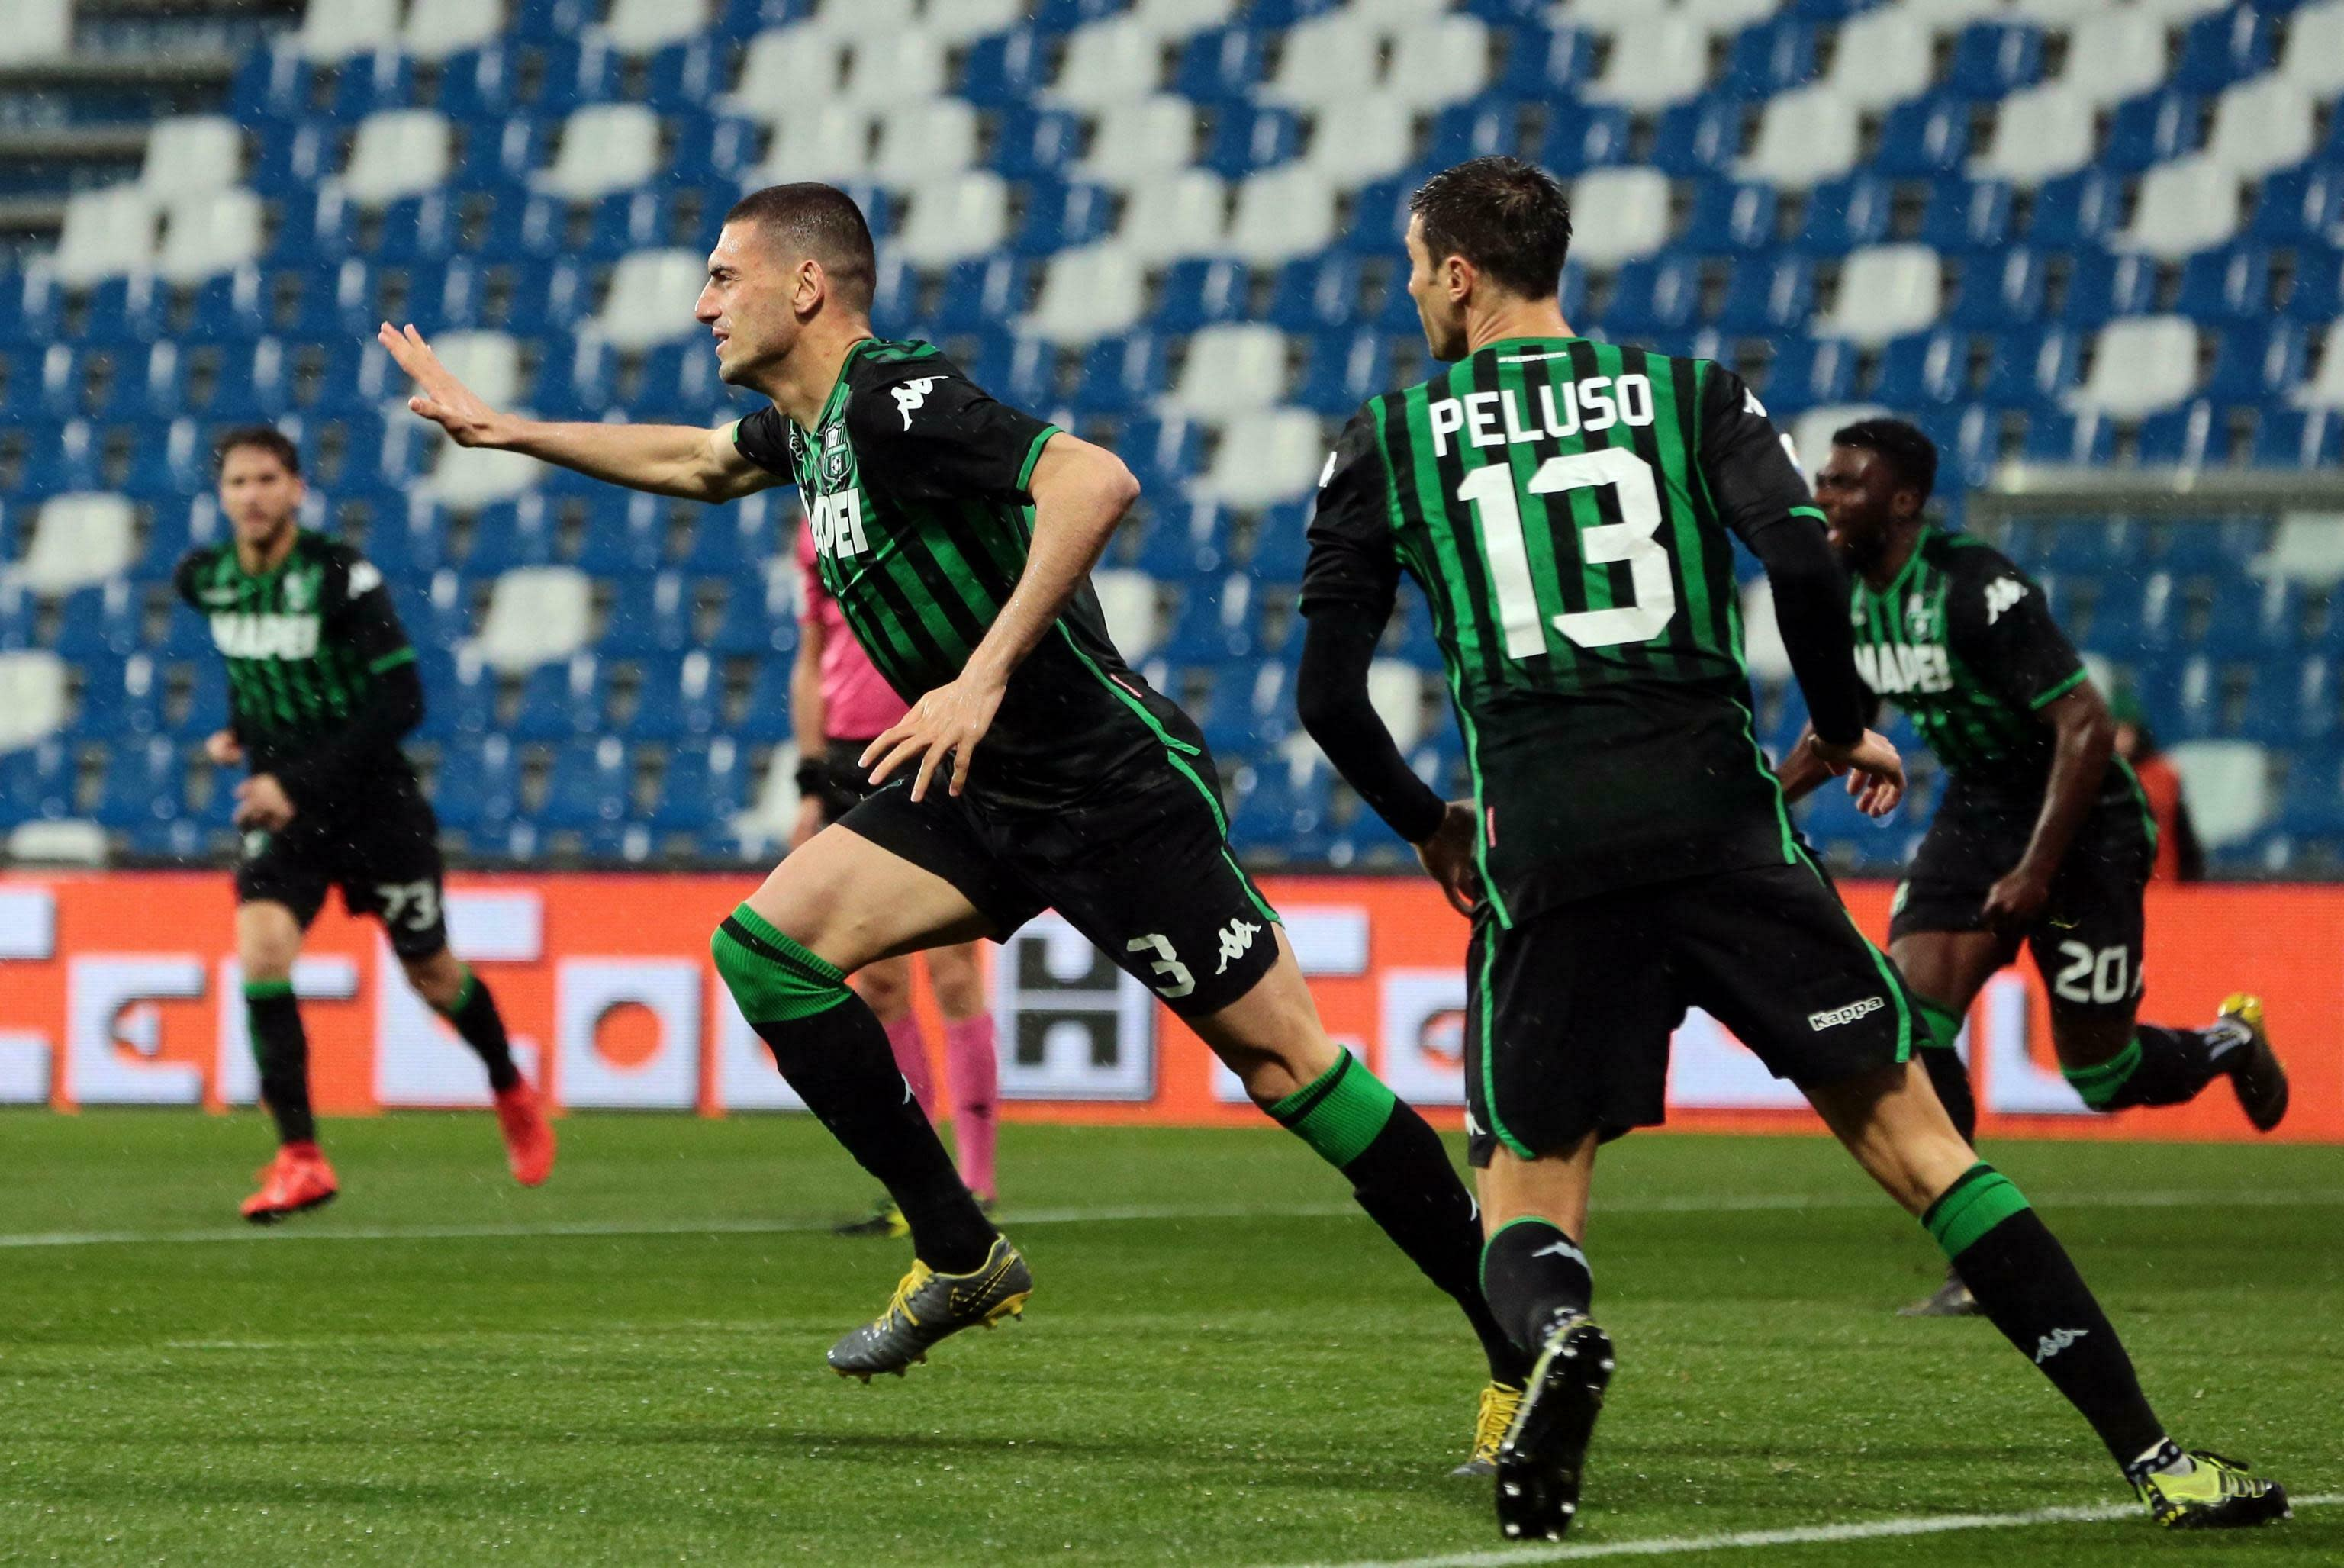 Atalanta wins to close in on Champions League places